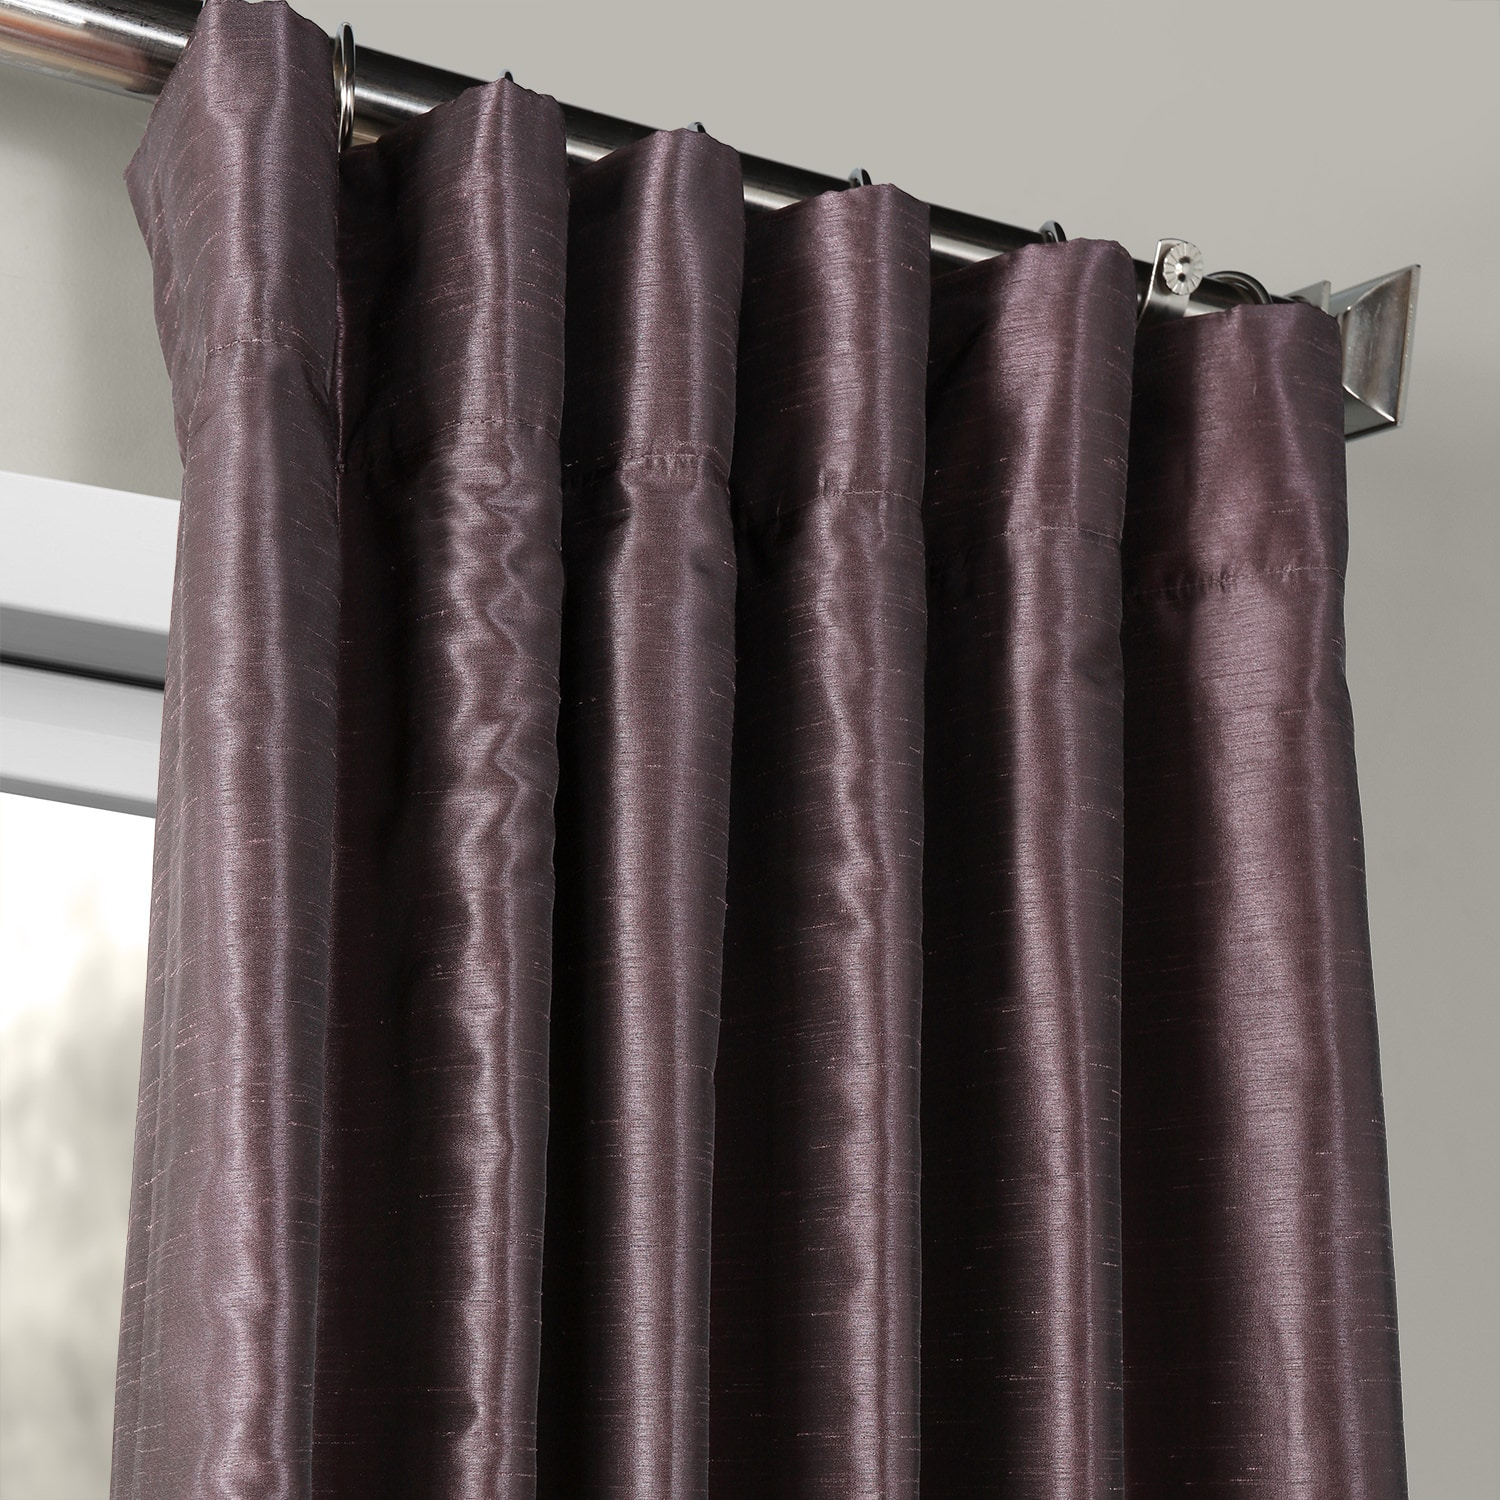 Dark Grape Vintage Textured Faux Dupioni Silk Curtain Intended For Ice White Vintage Faux Textured Silk Curtain Panels (View 17 of 20)